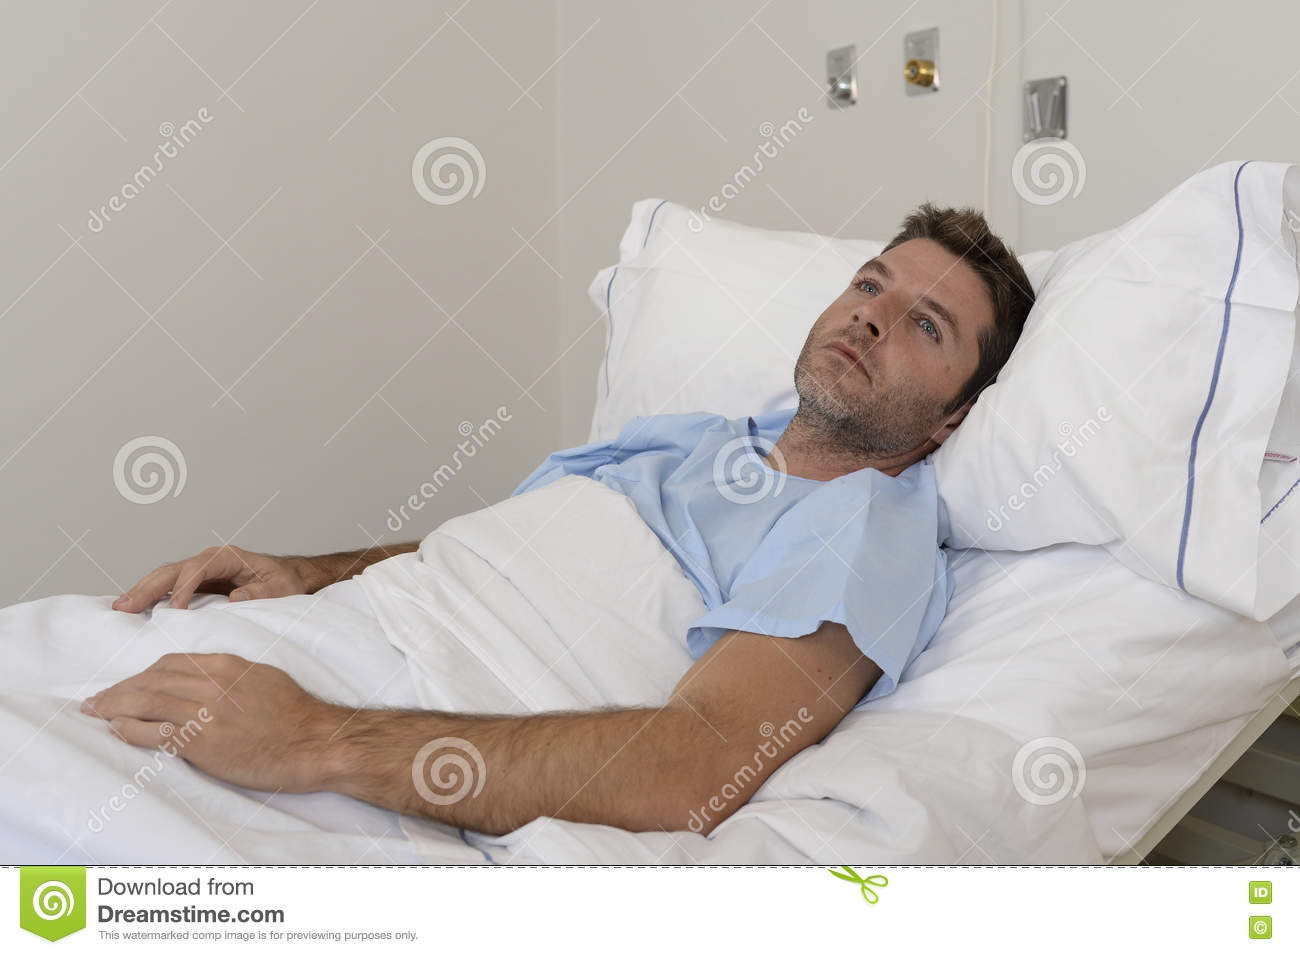 Young patient man lying at hospital bed resting tired looking sad and depressed worried